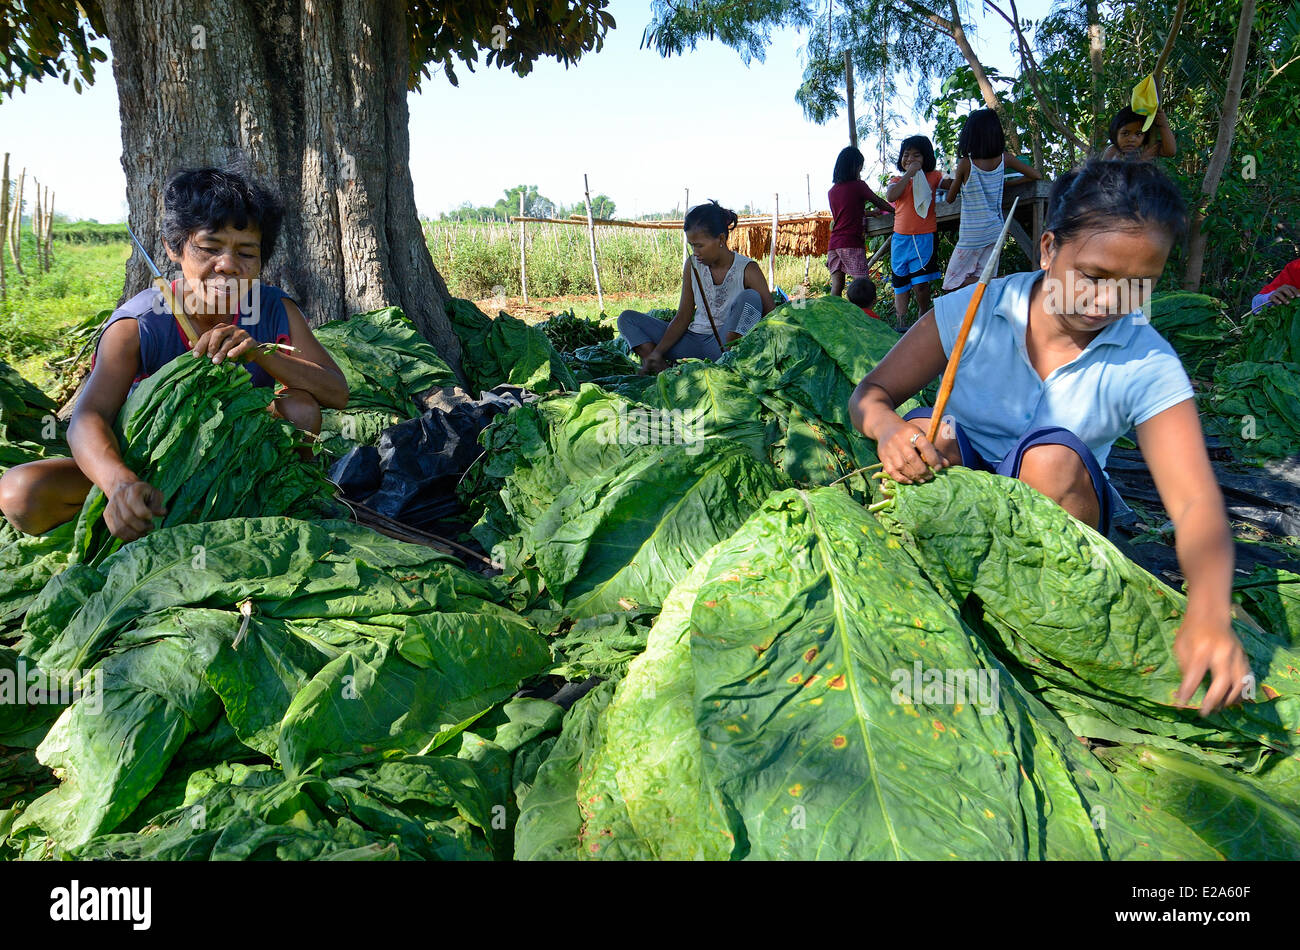 Philippines, Luzon island, Pangasinan, women hooking tobacco leaves on sticks before drying - Stock Image